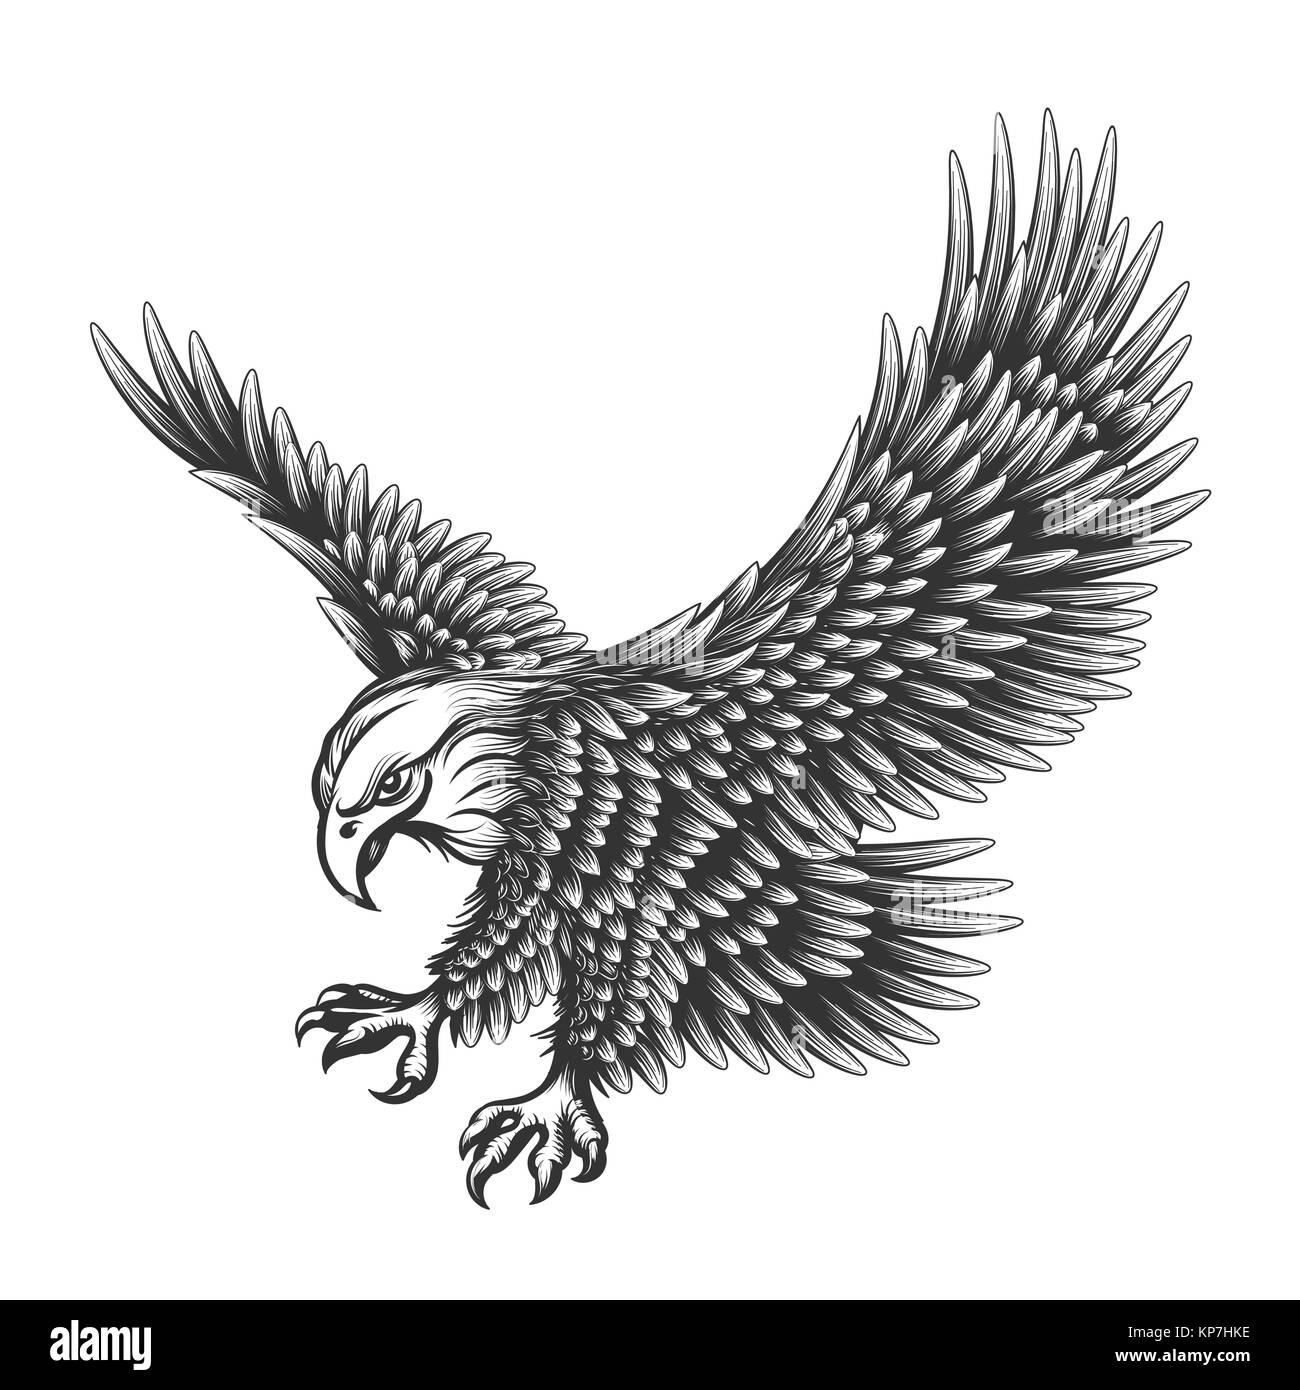 Flying eagle emblem drawn in engraving style isolated on white american symbol of freedom